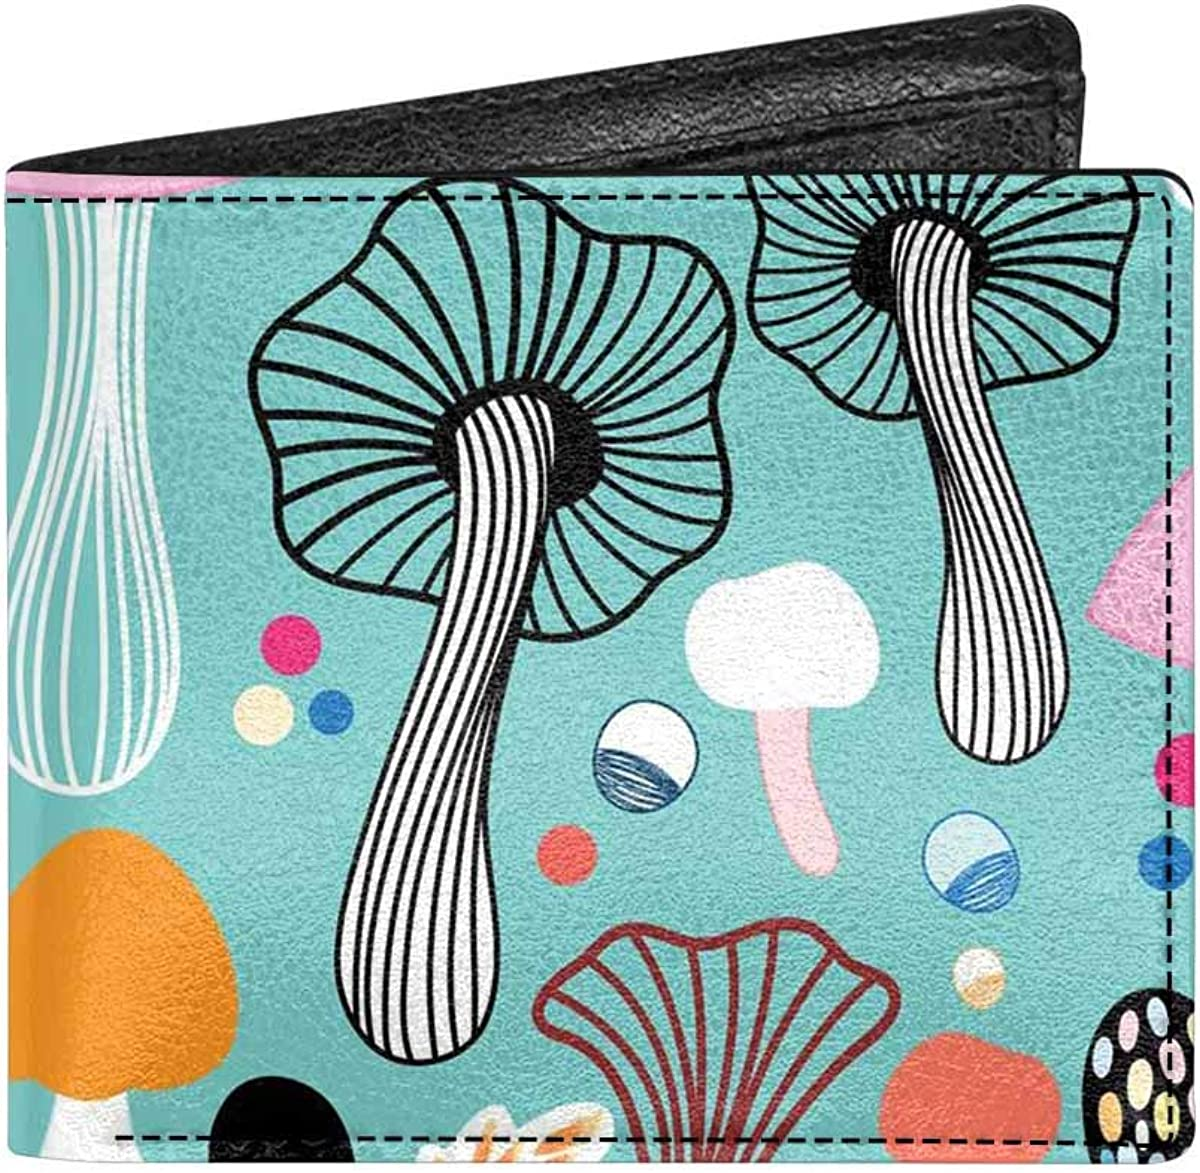 INTERESTPRINT Colorful Mushrooms Pattern Unisex Wallet Credit Card Wallet Bifold Purse With Coin Pocket